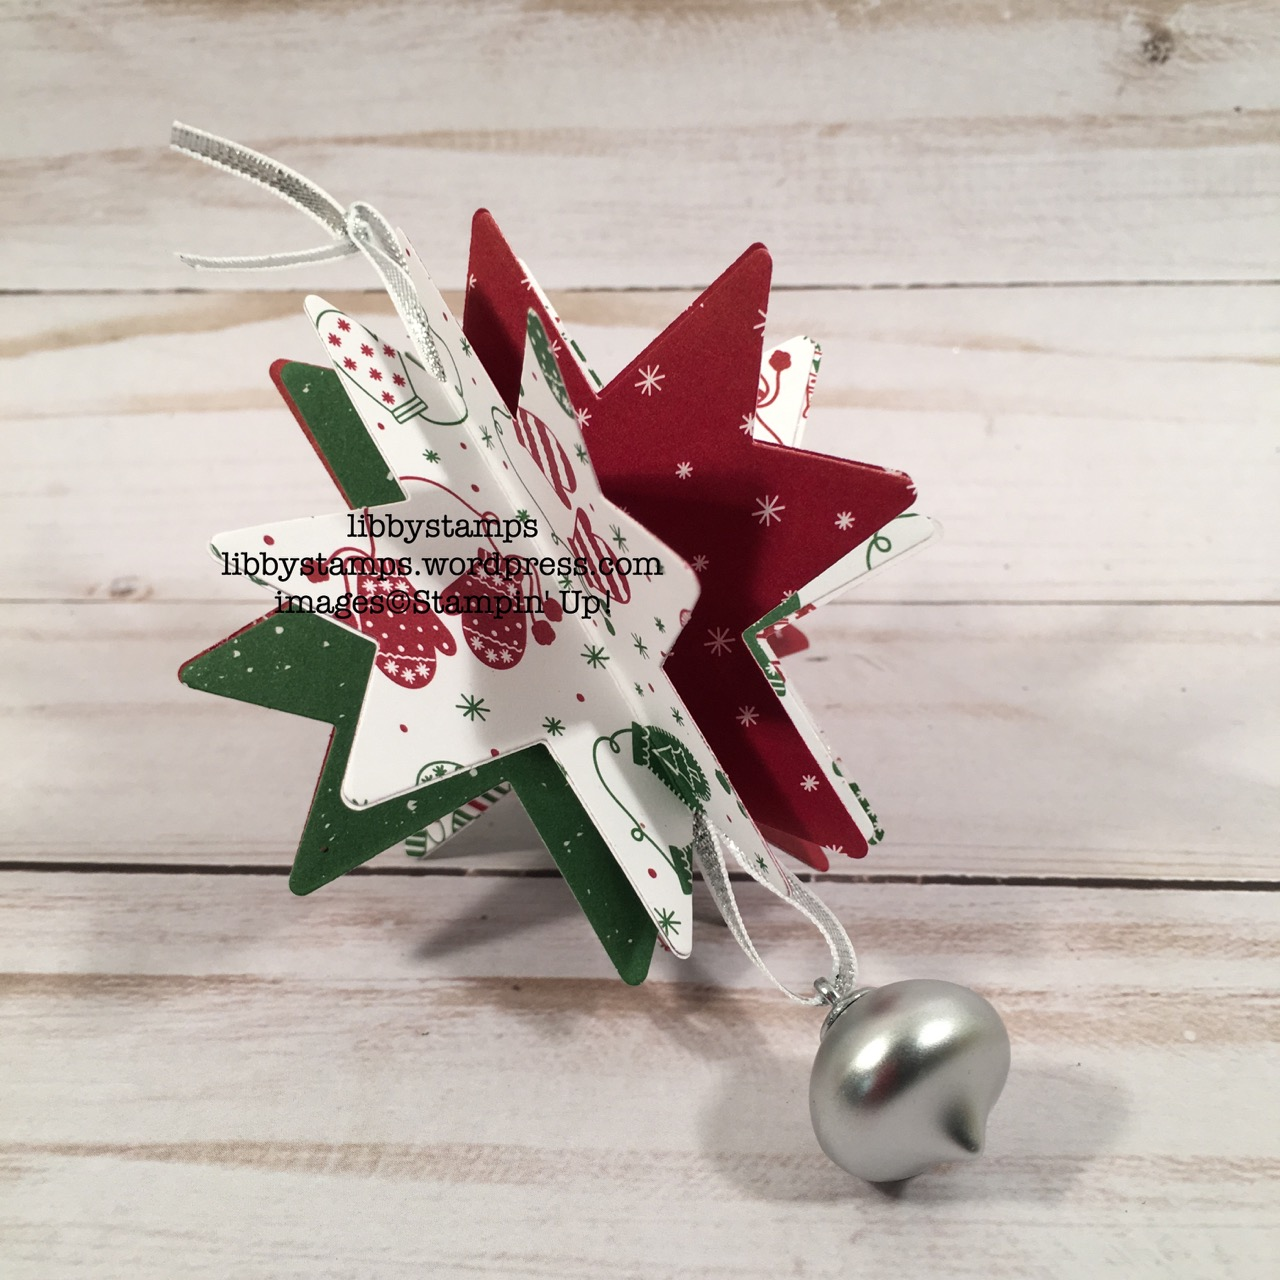 libbystamps, stampin up, Quilt Builder Framelits, Quilted Christmas 6x6, Mini Ornaments, Silver 1/8 Ribbon